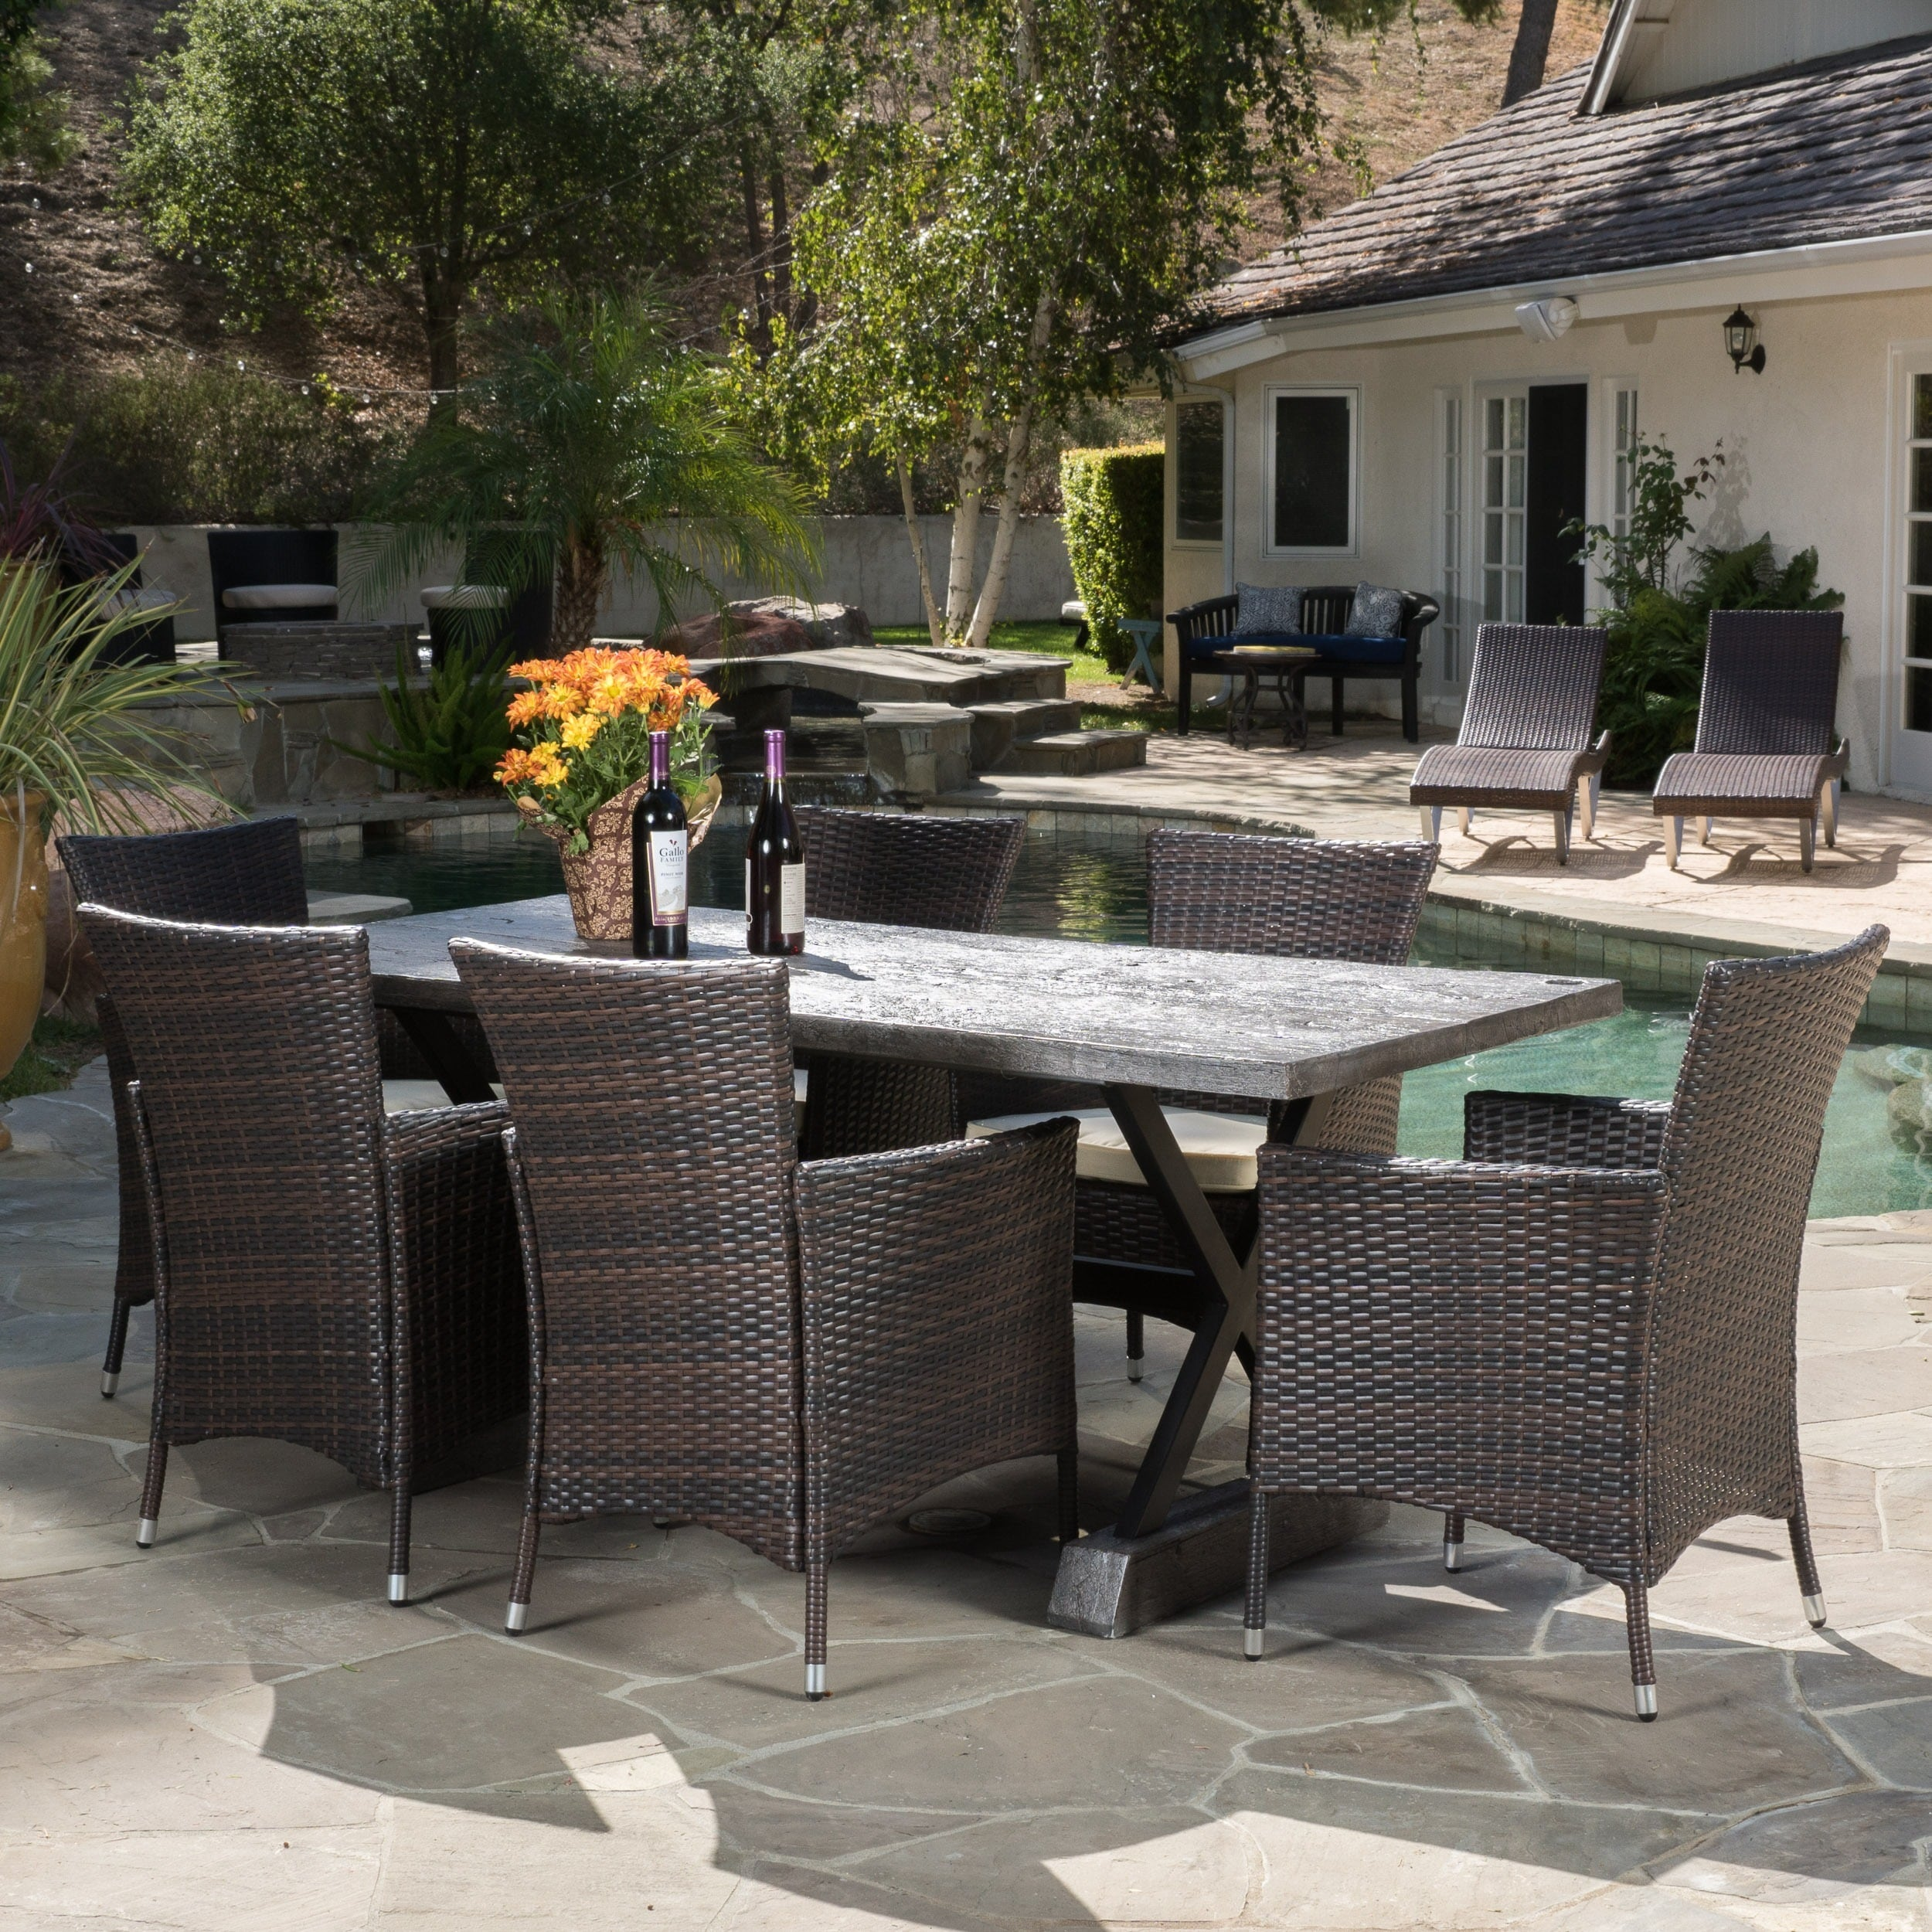 Numana Outdoor 7 Pc Lightweight Concrete Dining Set By Christopher Knight Home On Sale Overstock 10659004 Brown Black Multi Brown Beige Cushion